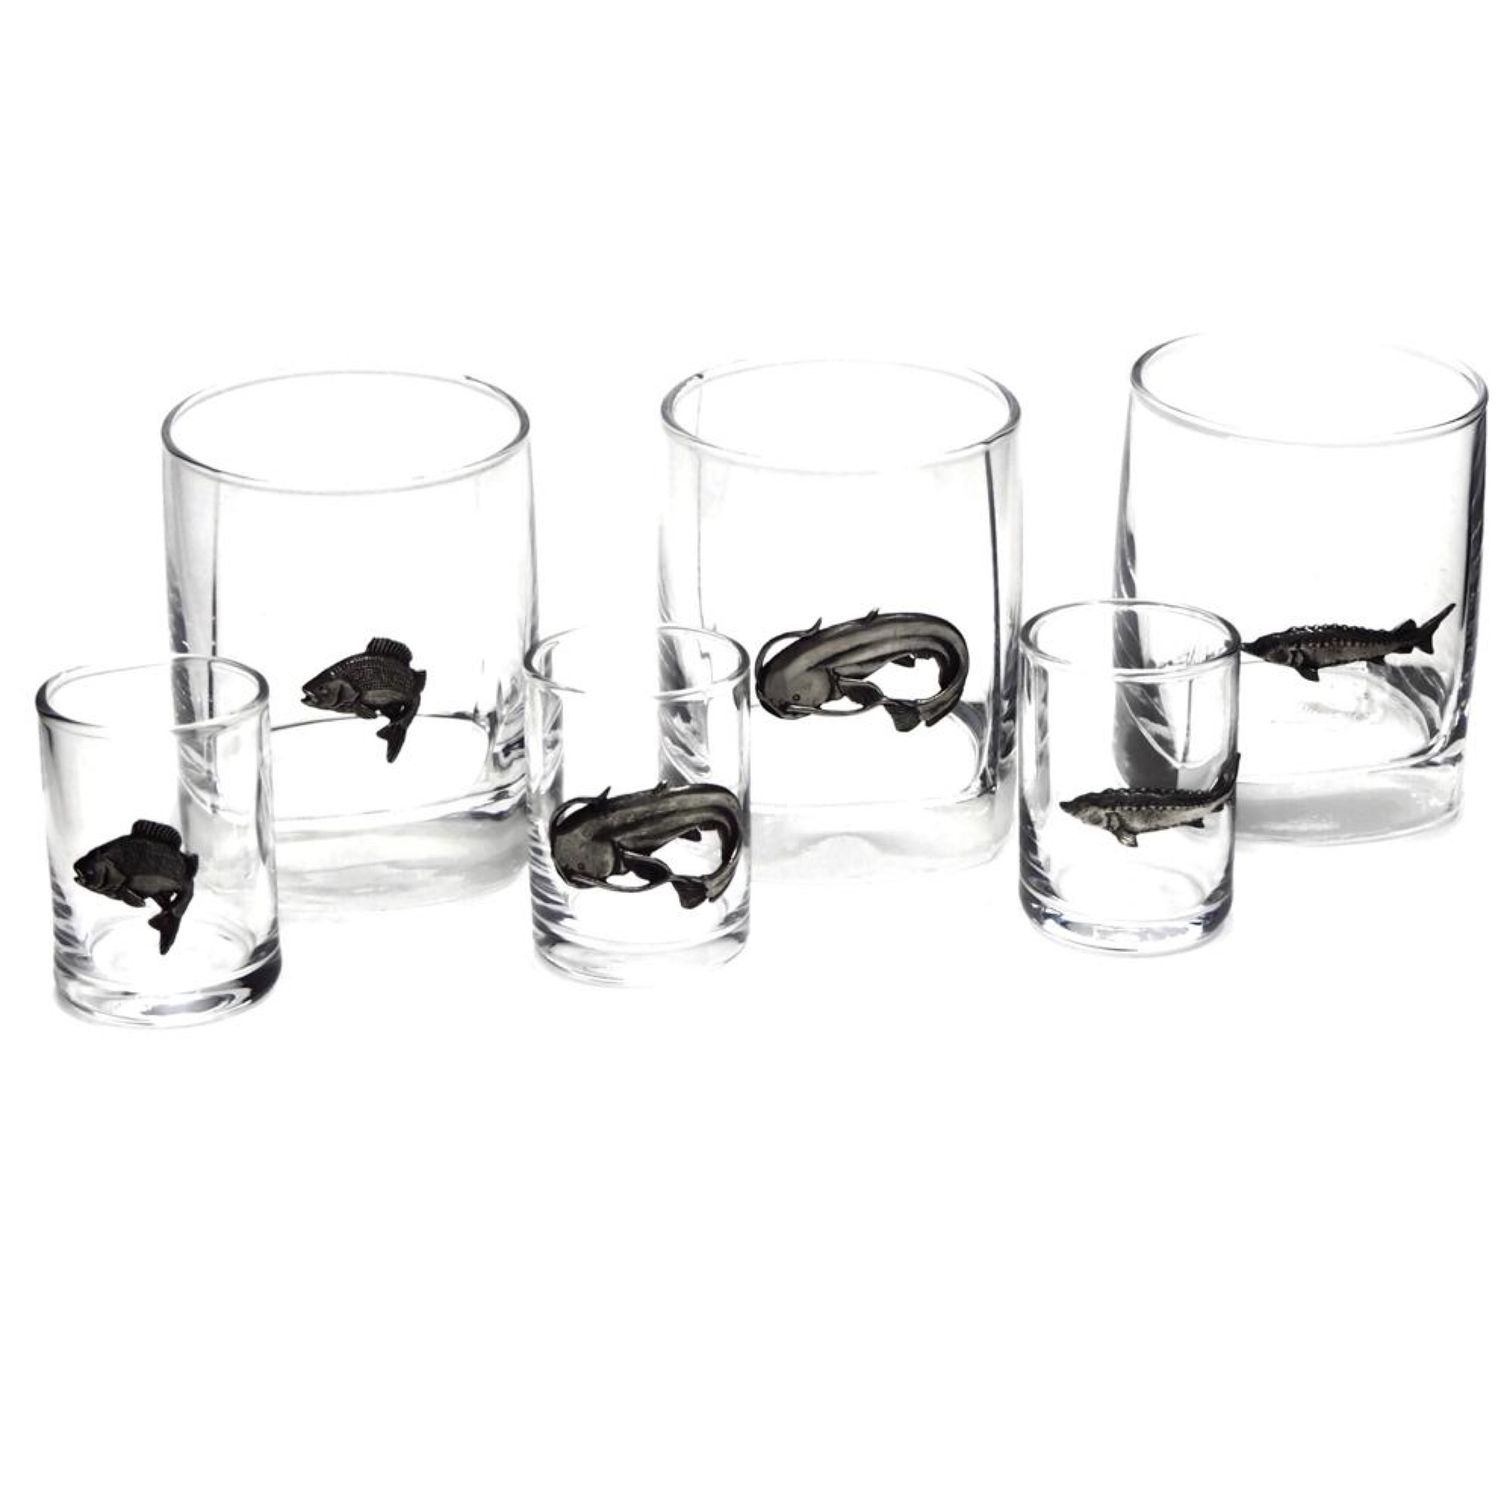 Gift set 'Big catch' (glass 3 PCs., stack 3 PCs.), Gifts for hunters and fishers, Zhukovsky,  Фото №1